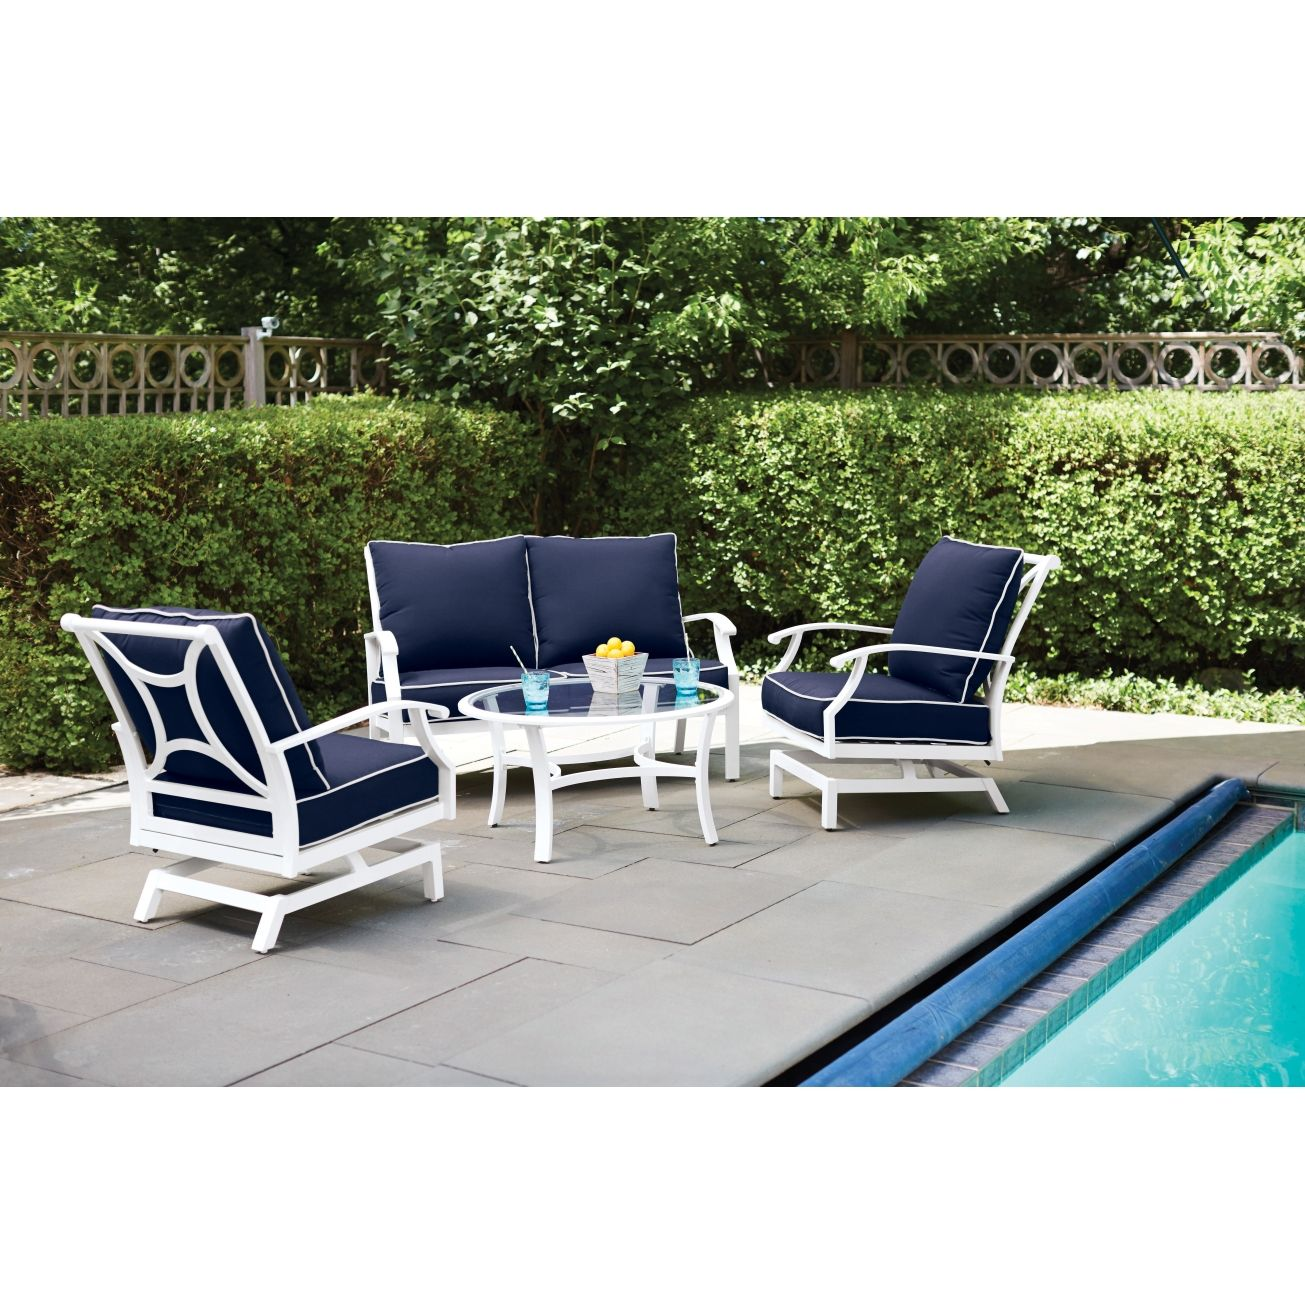 Nice Amazing Ace Hardware Patio Furniture 32 In Home Decorating Ideas With  Ace Hardware Patio Furniture